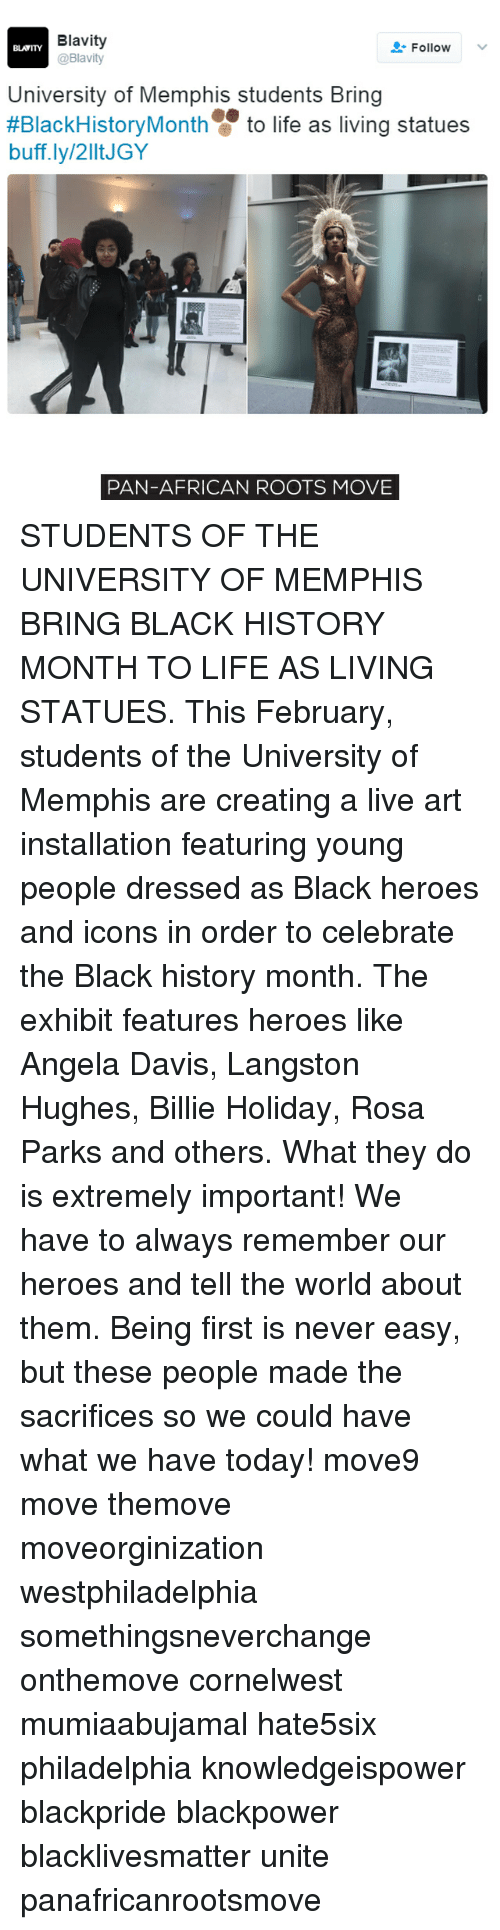 Memes, Rosa Parks, and 🤖: Blavity  Follow  BLATITY  @Blavity  University of Memphis students Bring  #BlackHistory Month to life as living statues  buff.ly/2lltJGY  PAN-AFRICAN ROOTS MOVE STUDENTS OF THE UNIVERSITY OF MEMPHIS BRING BLACK HISTORY MONTH TO LIFE AS LIVING STATUES. This February, students of the University of Memphis are creating a live art installation featuring young people dressed as Black heroes and icons in order to celebrate the Black history month. The exhibit features heroes like Angela Davis, Langston Hughes, Billie Holiday, Rosa Parks and others. What they do is extremely important! We have to always remember our heroes and tell the world about them. Being first is never easy, but these people made the sacrifices so we could have what we have today! move9 move themove moveorginization westphiladelphia somethingsneverchange onthemove cornelwest mumiaabujamal hate5six philadelphia knowledgeispower blackpride blackpower blacklivesmatter unite panafricanrootsmove